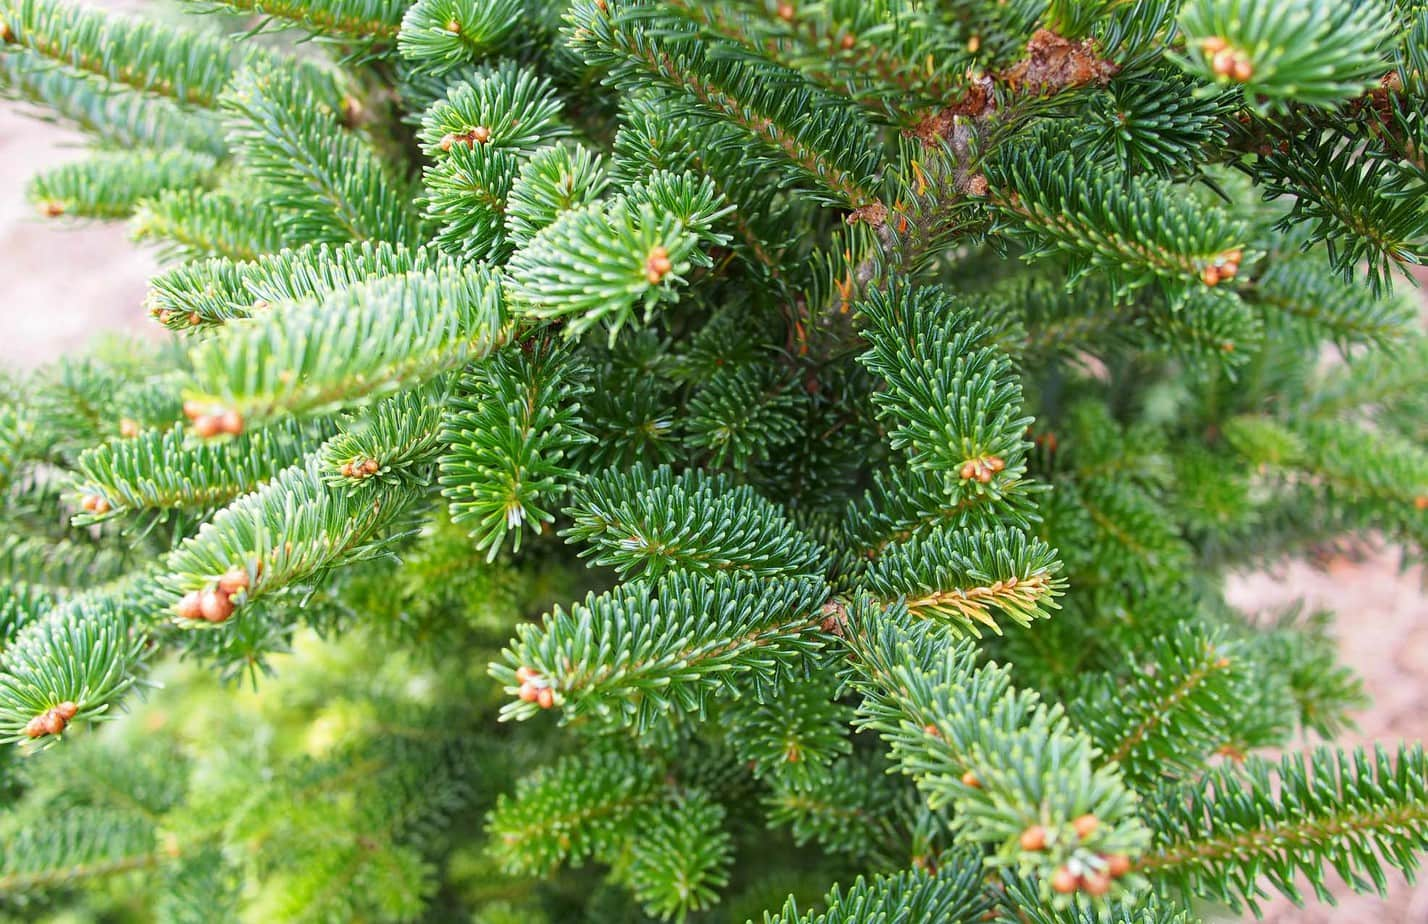 Is Fraser fir toxic to cats?